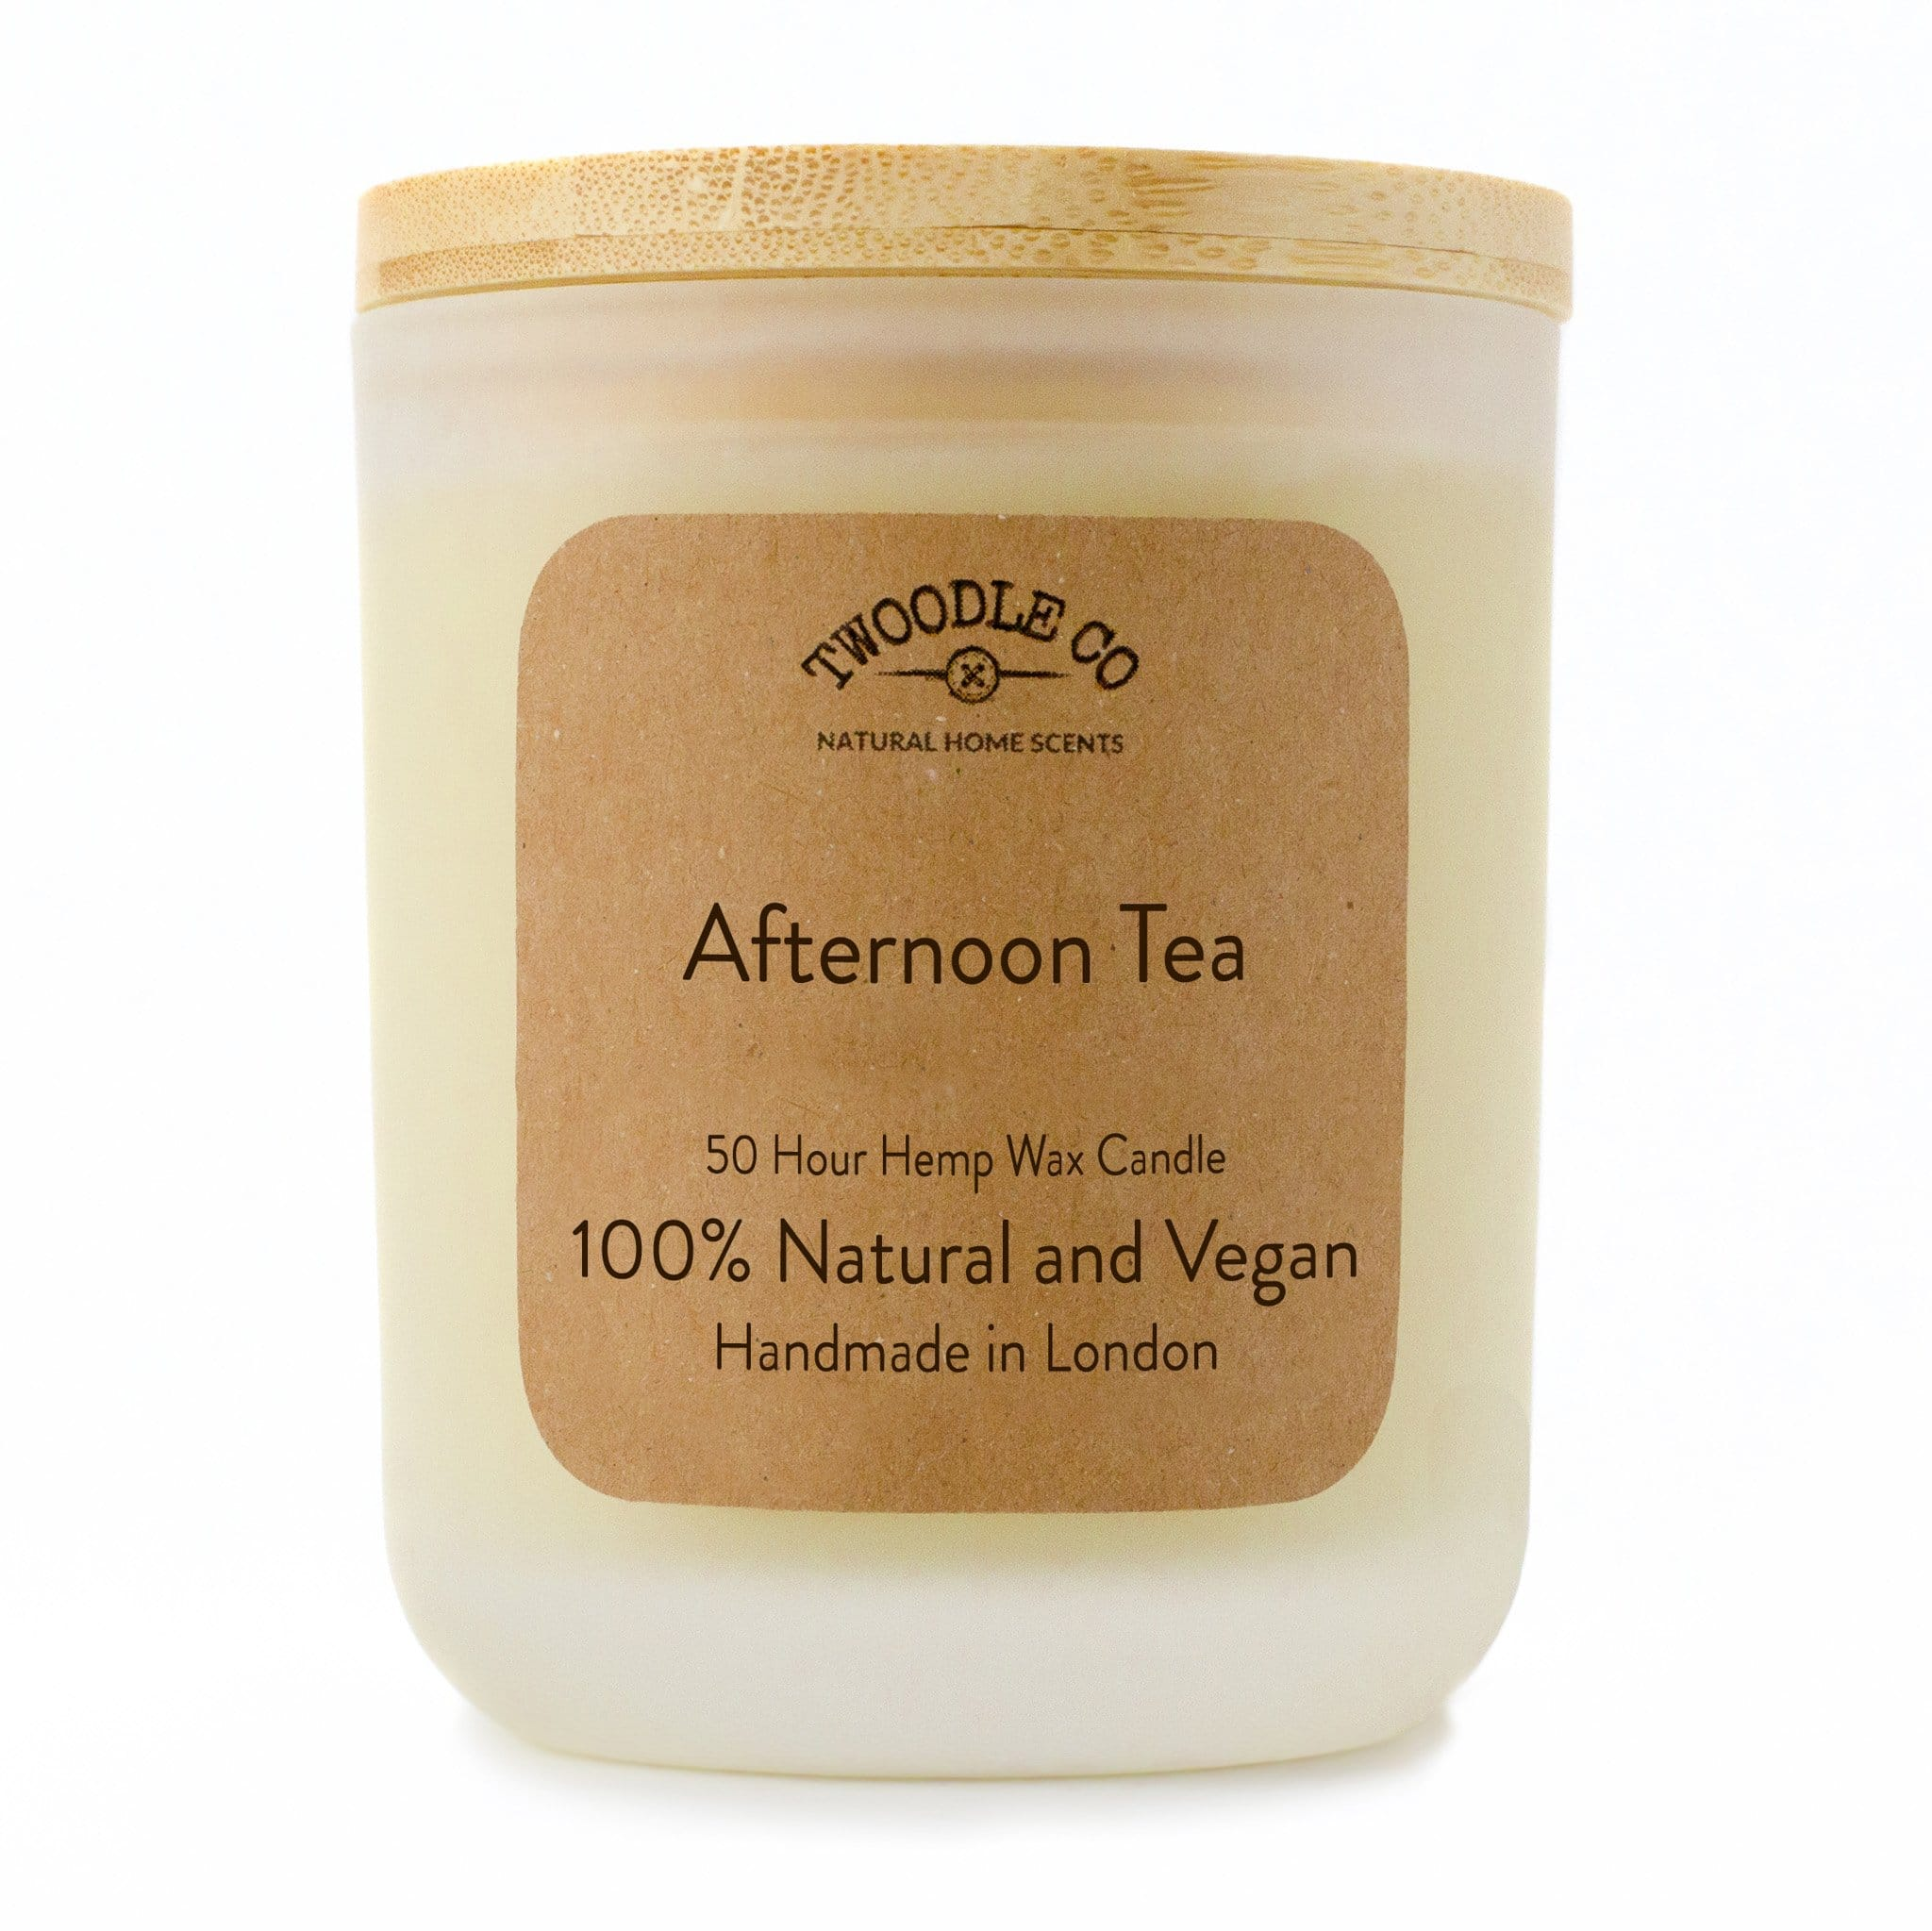 Afternoon Tea Medium Scented Candle 50 Hour